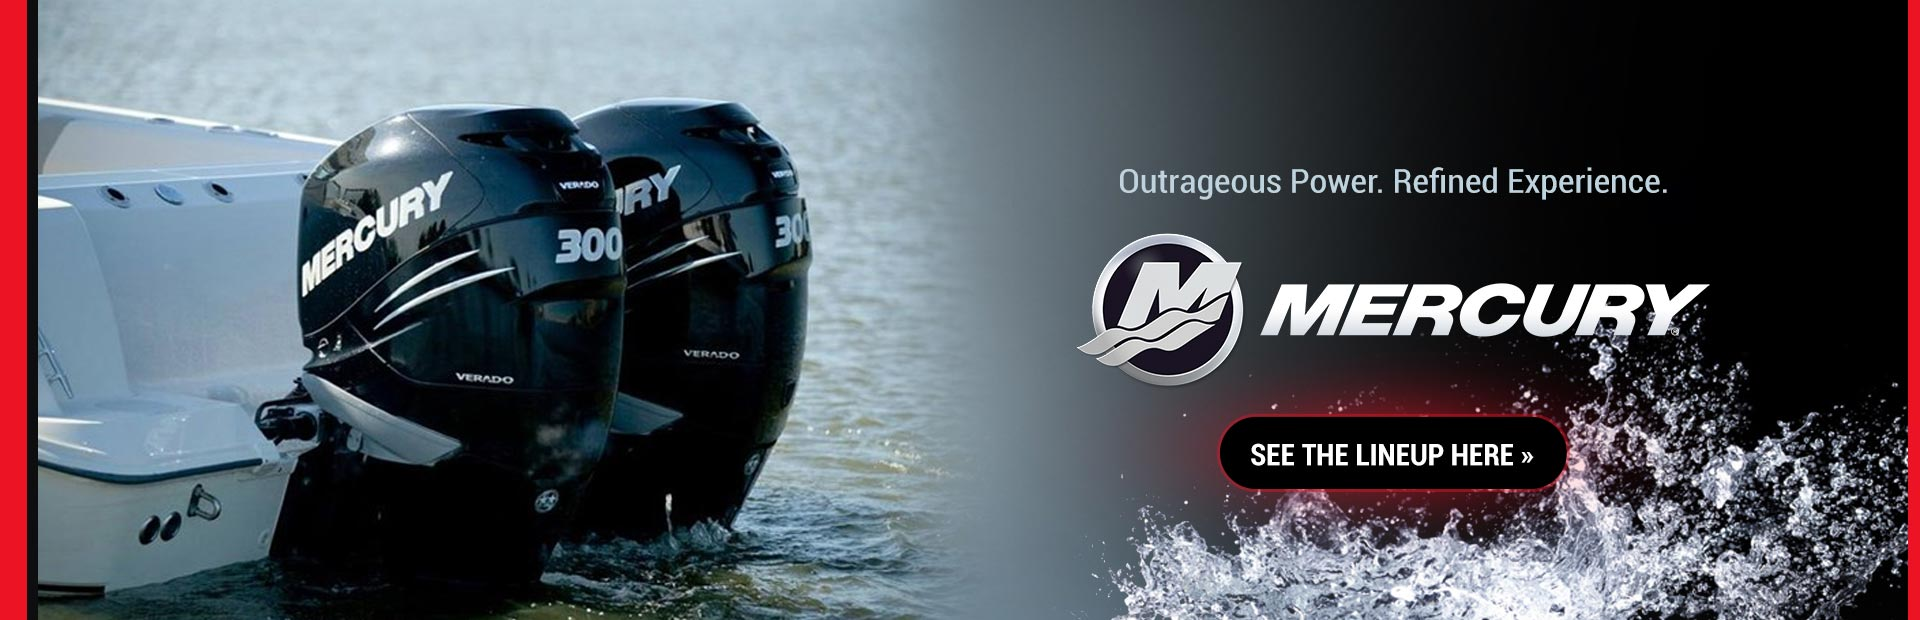 Family Owned And Operated Since 1967 Specializing In Mercury Dual Master Technician For Outboards Racing Outboard Motors Click Here To View The Models